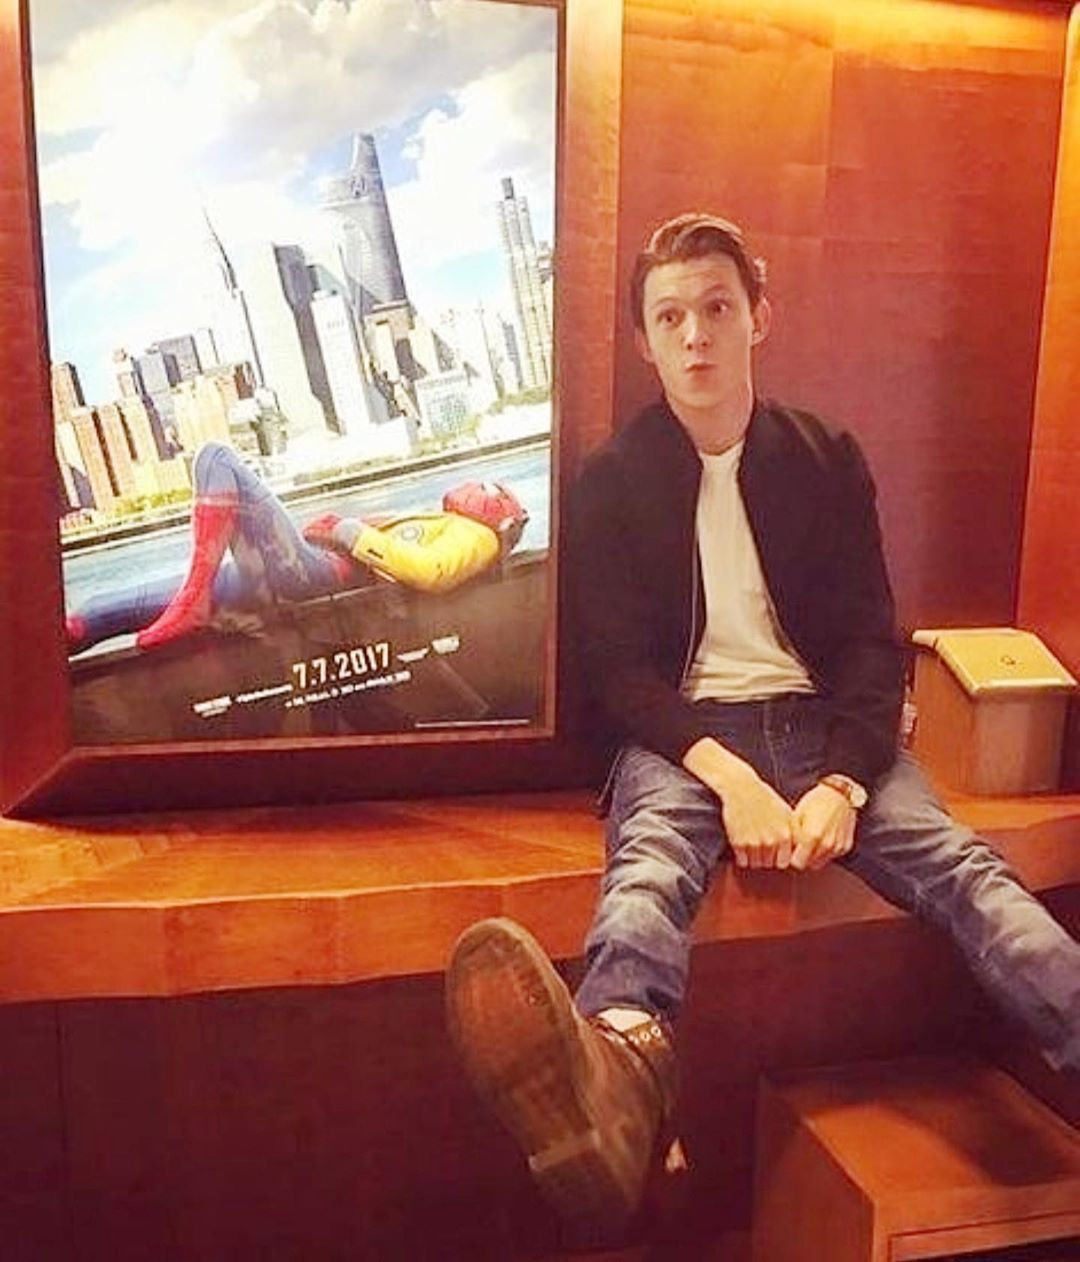 Pin by Isabel Elliot on Tom Holland ️ in 2020 Tom